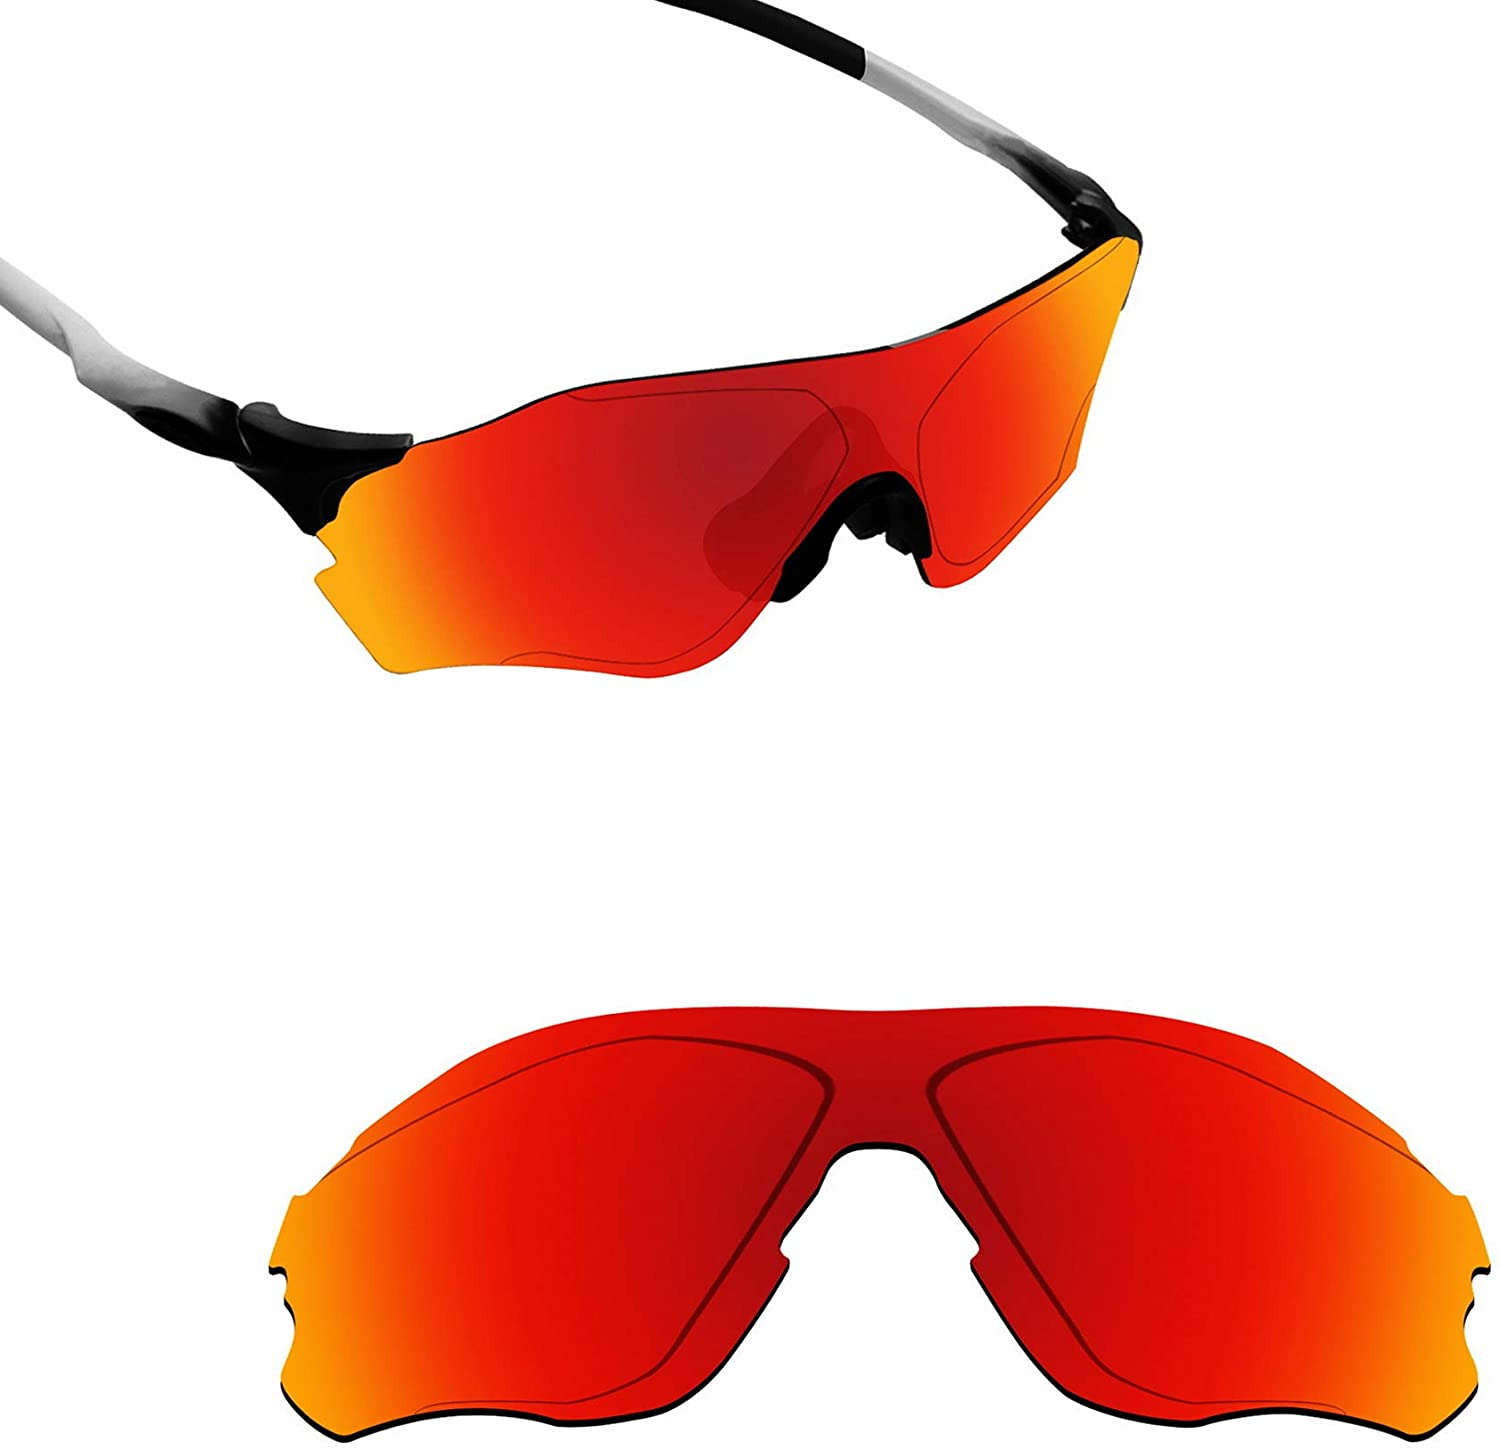 Alphax Polarized Replacement Lenses/Accessories for Oakley EVZero Path OO9308 - Multiple Options